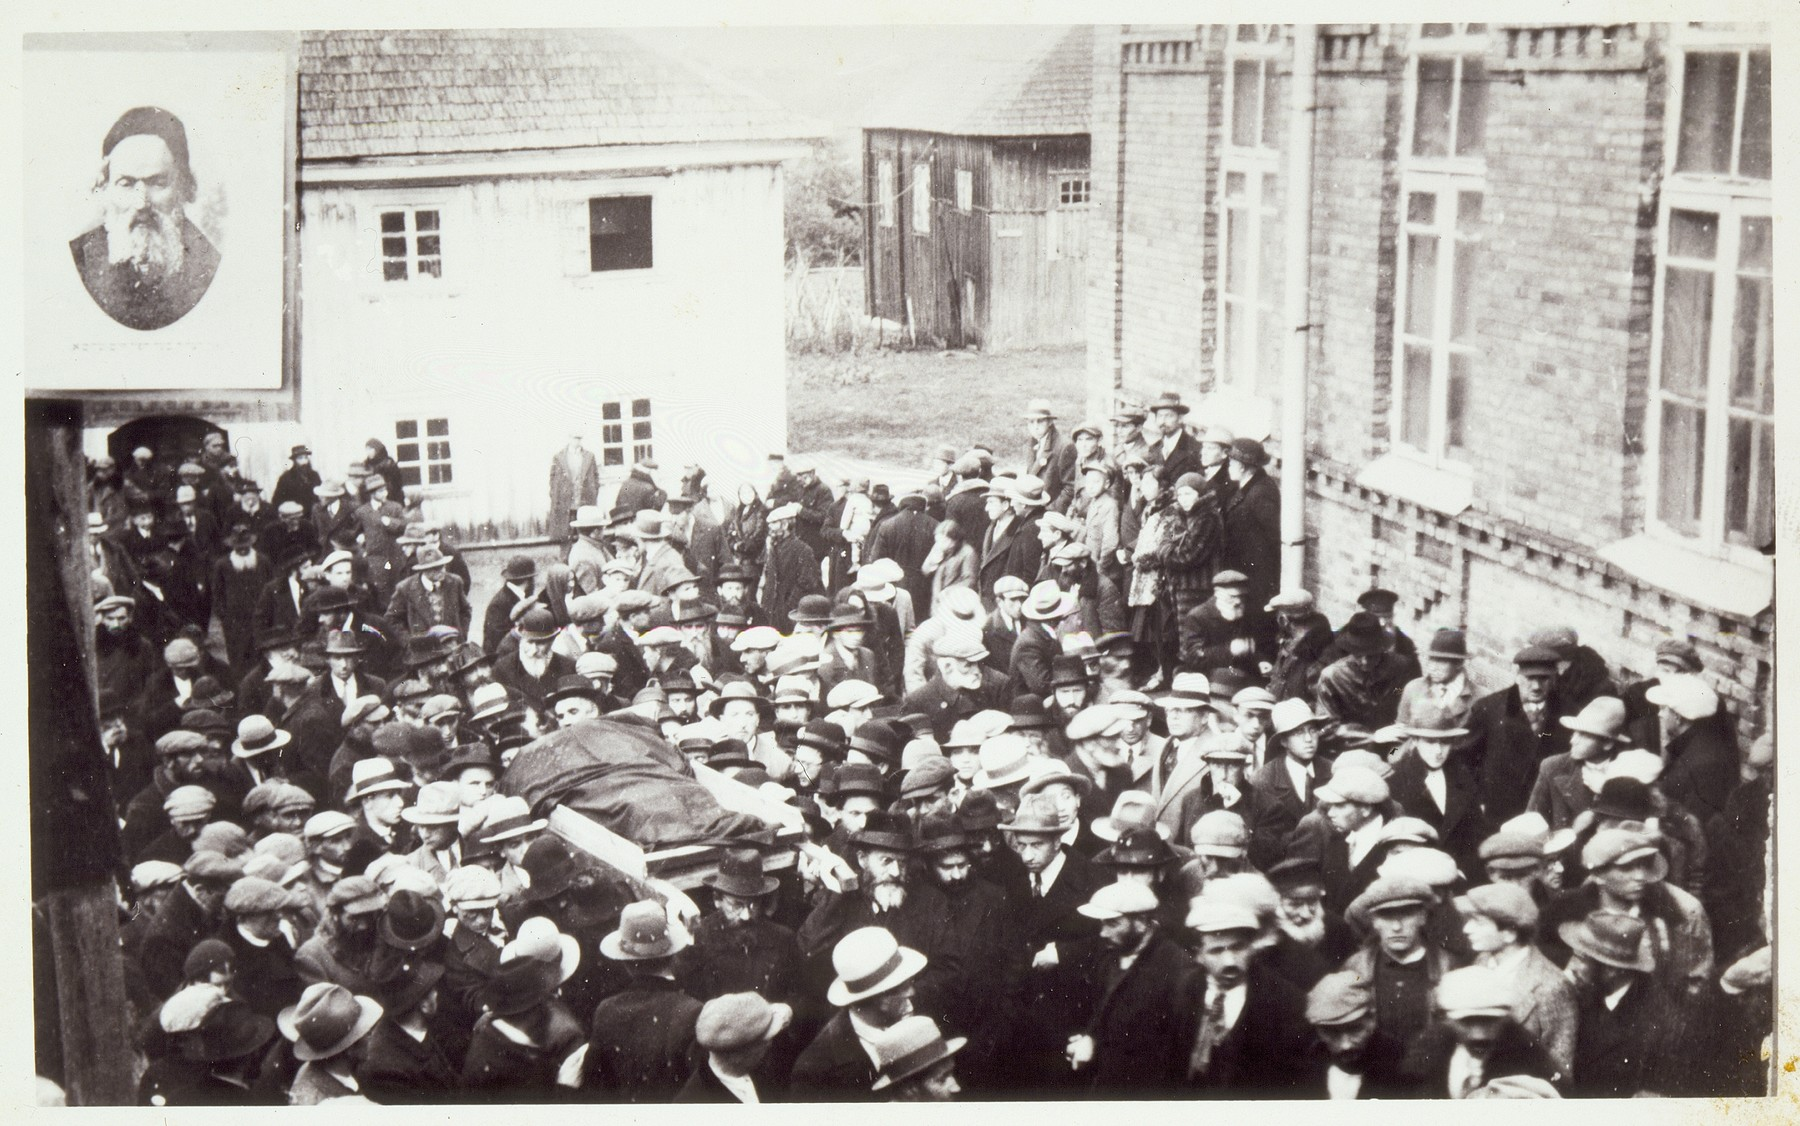 A large crowd of disciples gathers at the Radun Yeshiva to escort the body of the Hafetz Hayyim during his funeral.